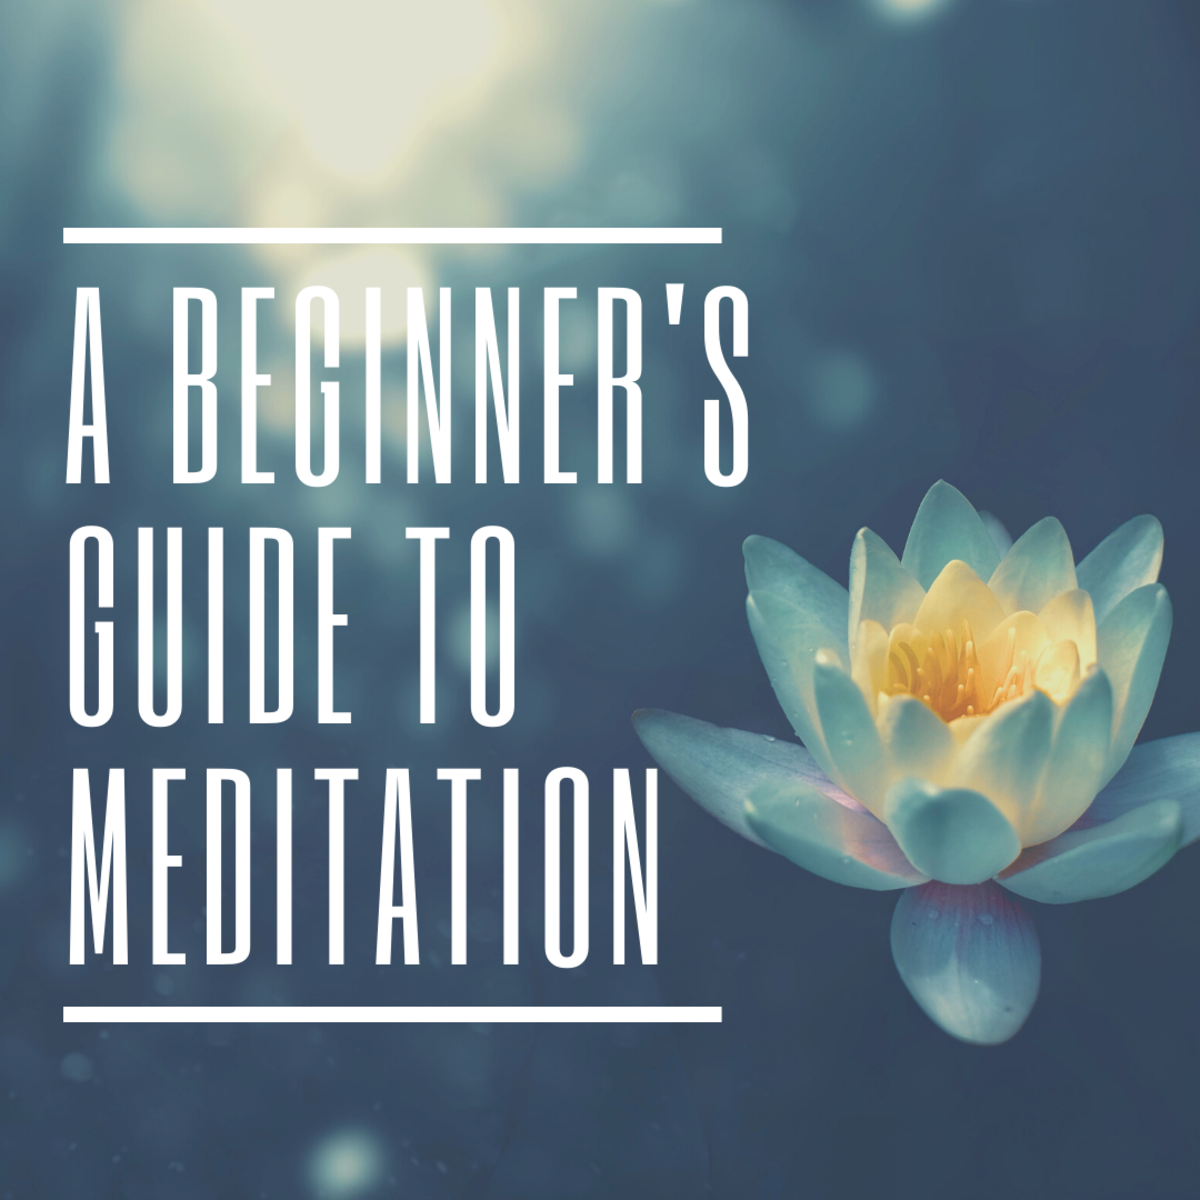 Explore the basics of meditation with this guide.